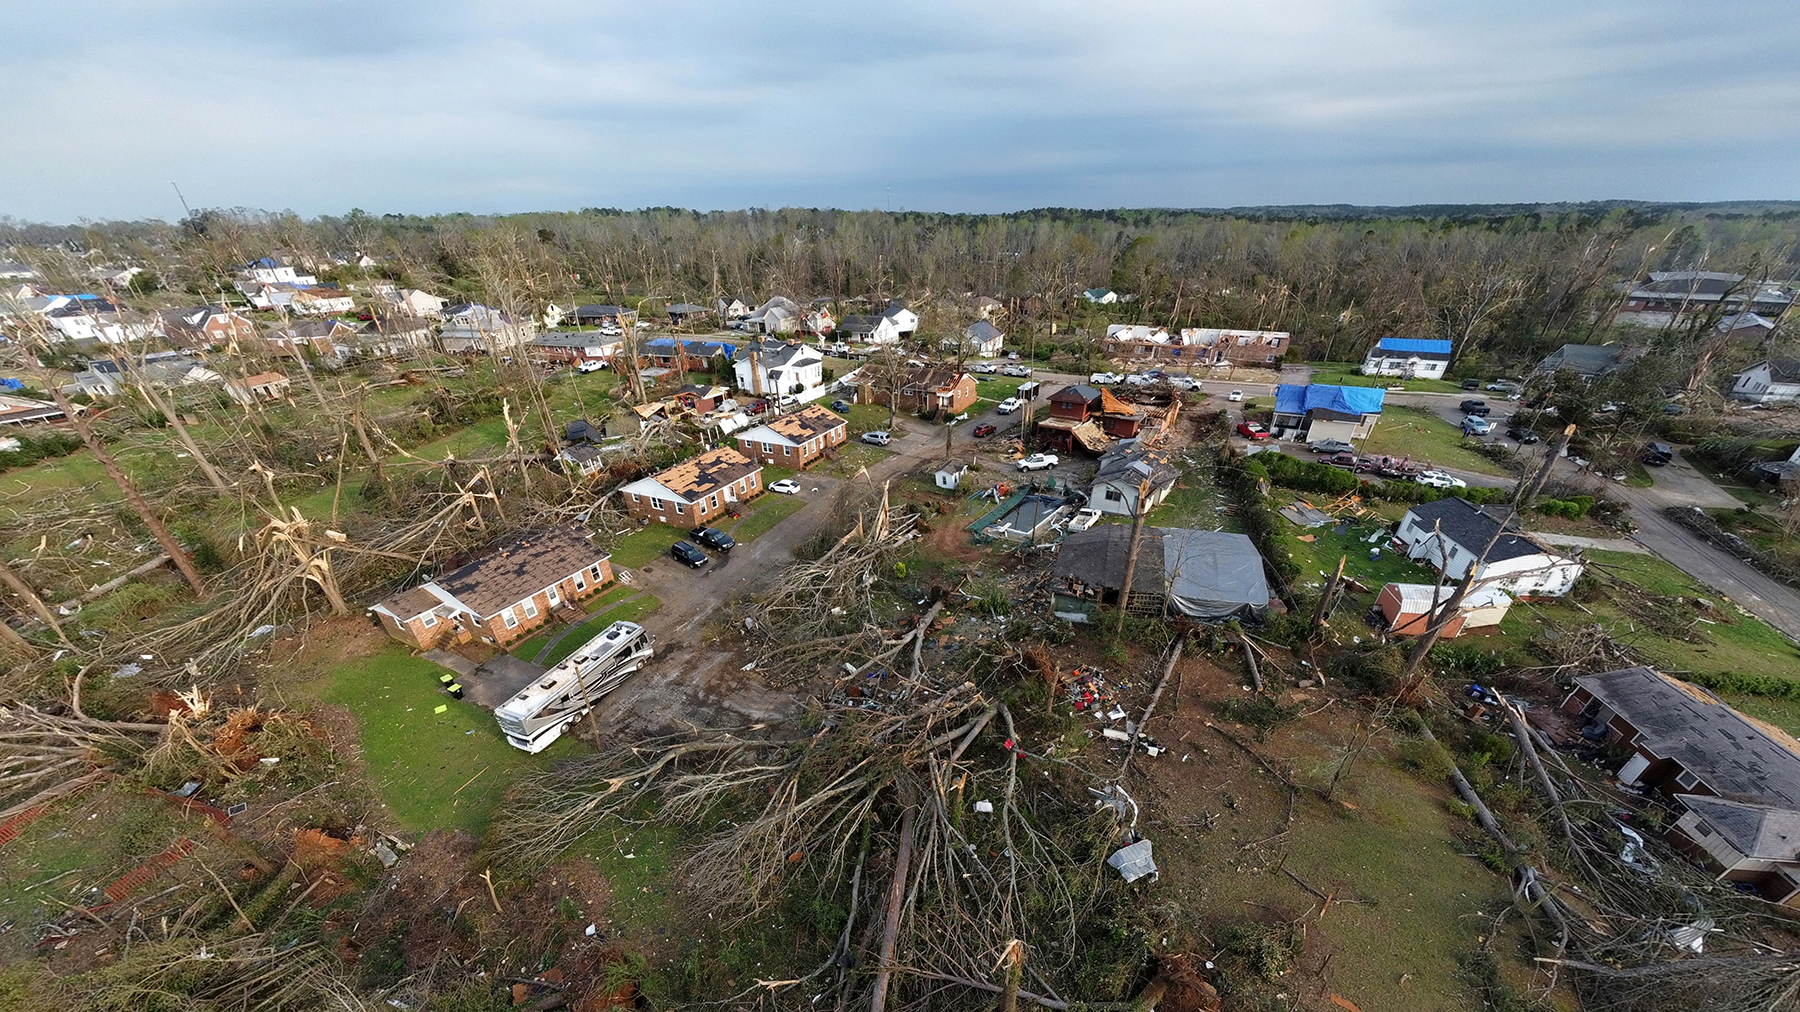 Tornado damage to homes on March 26, 2021 in Newnan, Georgia. An EF-4 rating tornado passed through Newnan and parts of nearby Coweta and Heard counties late Thursday night into Friday.  Dozens of storms were reported across the U.S. after a devastating weather system swept through. (Photo by Scott Cunningham/Getty Images)